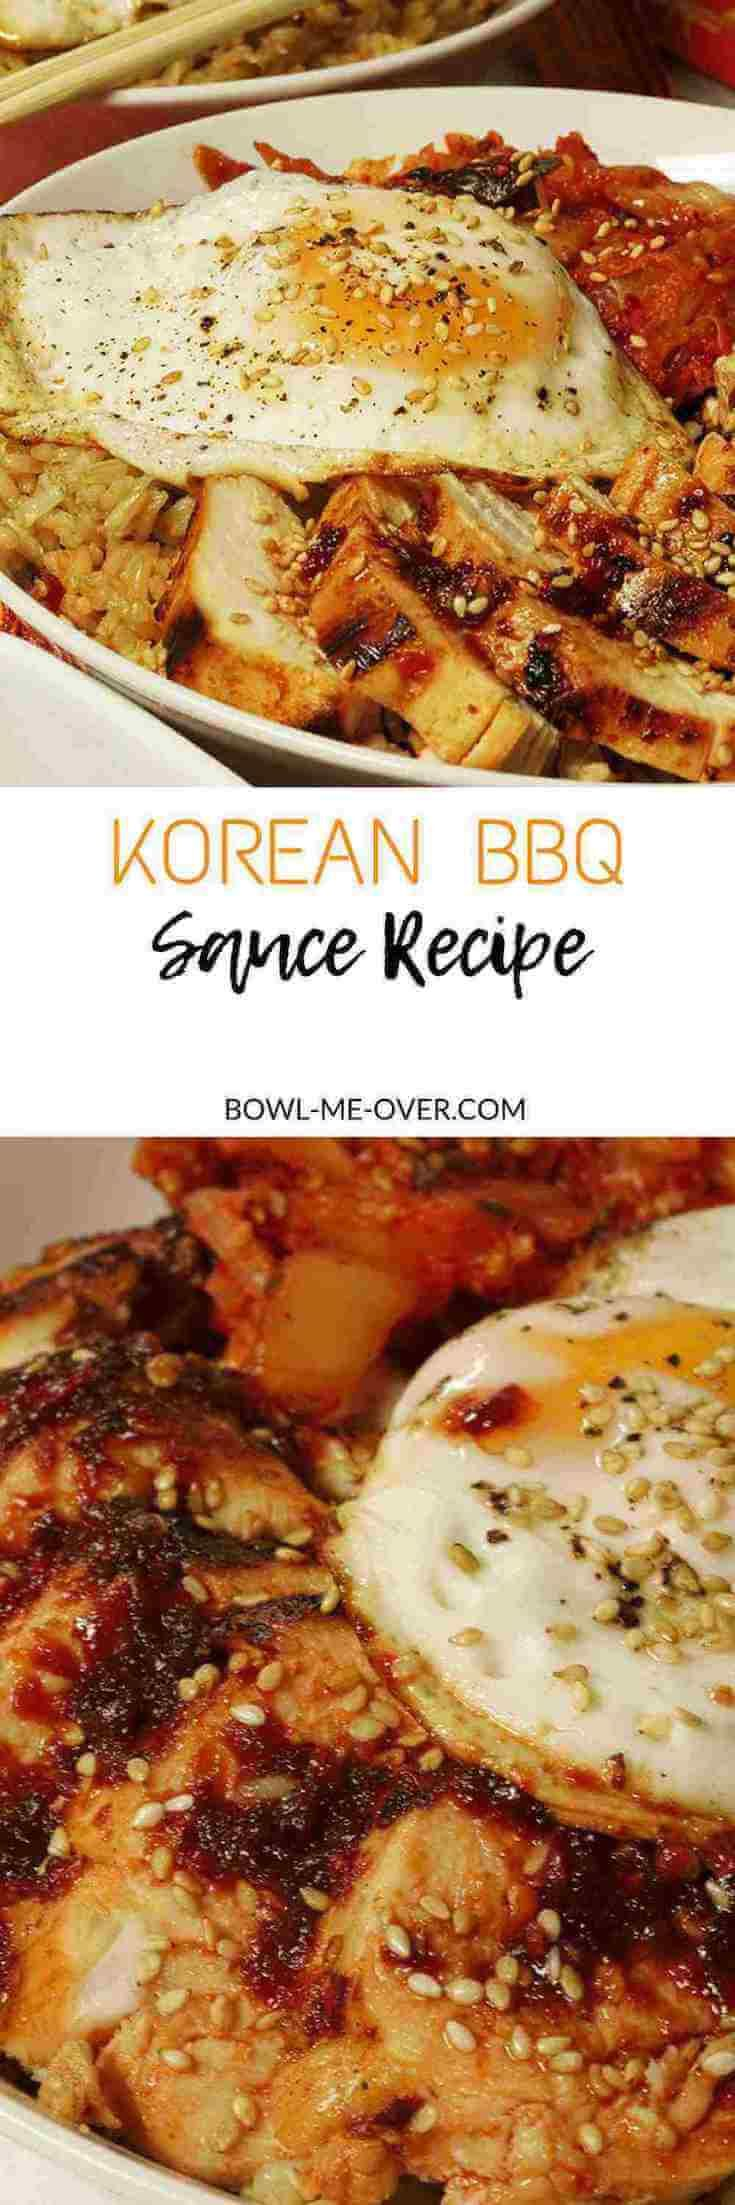 Korean bbq sauce recipe korean bbq sauce korean bbq and kimchi an easy korean bbq sauce recipe that is sweet and salty spicy and savory forumfinder Image collections